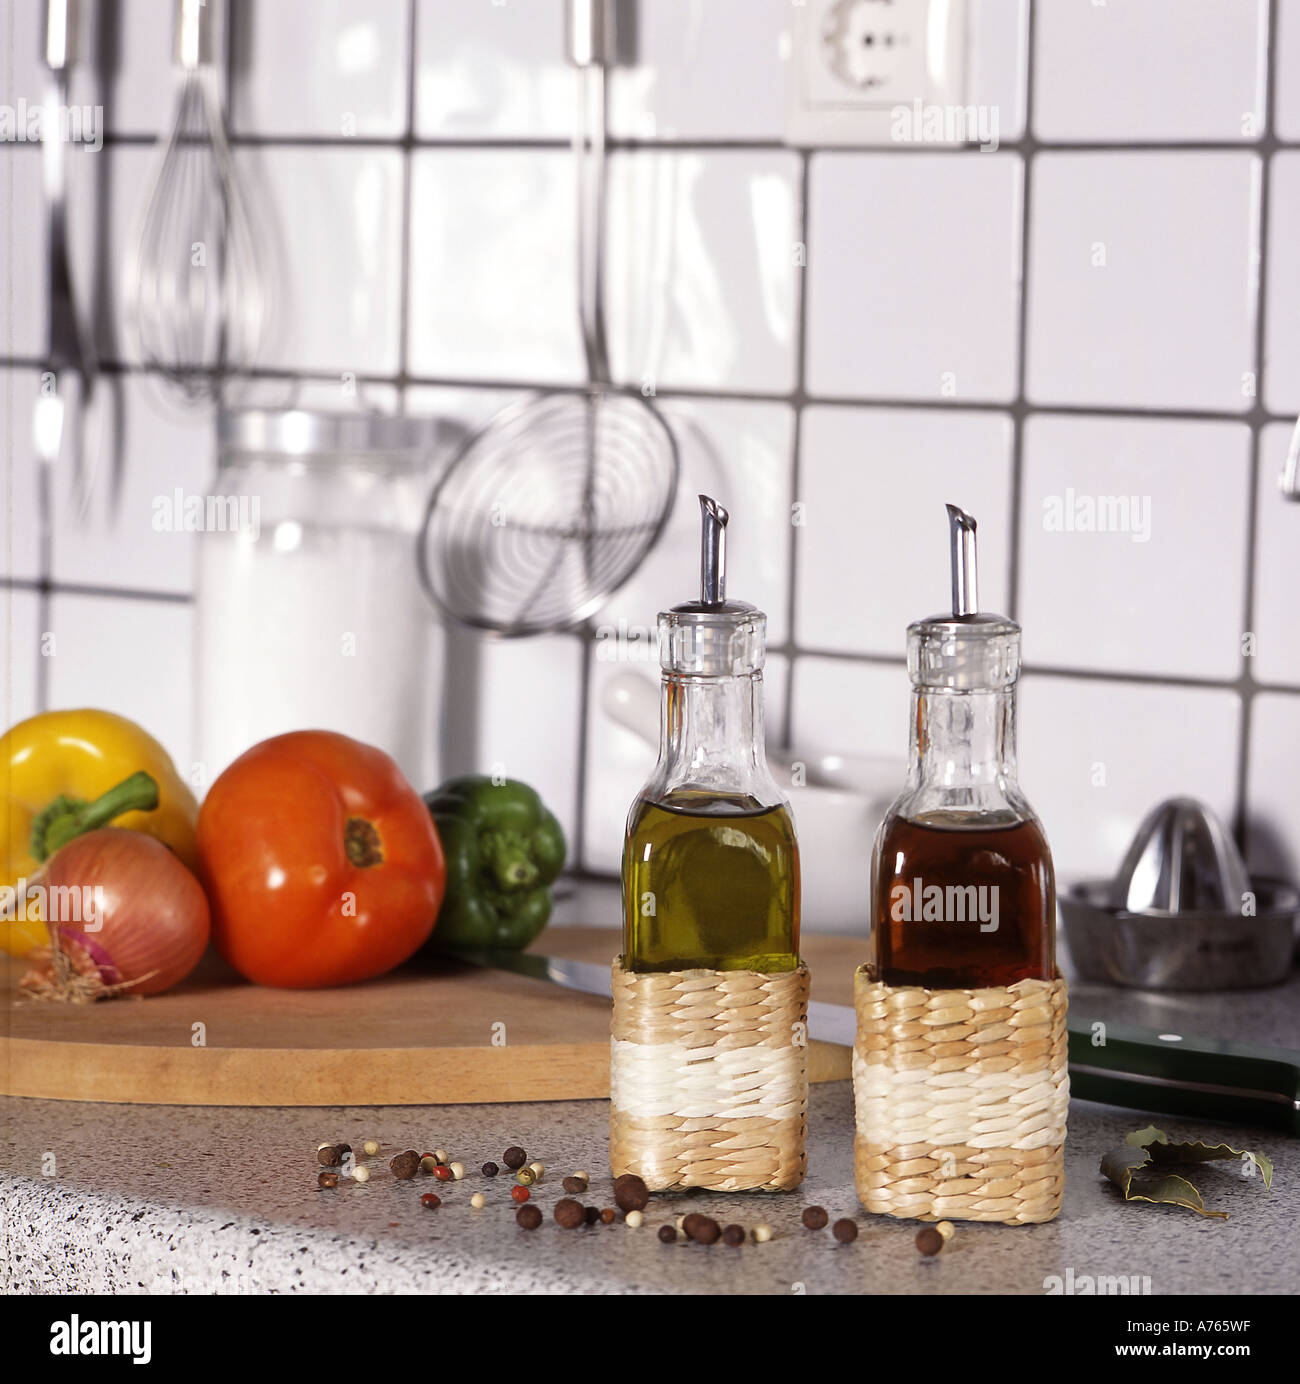 Oil And Vinegar Bottles With Spice And Vegetables On A